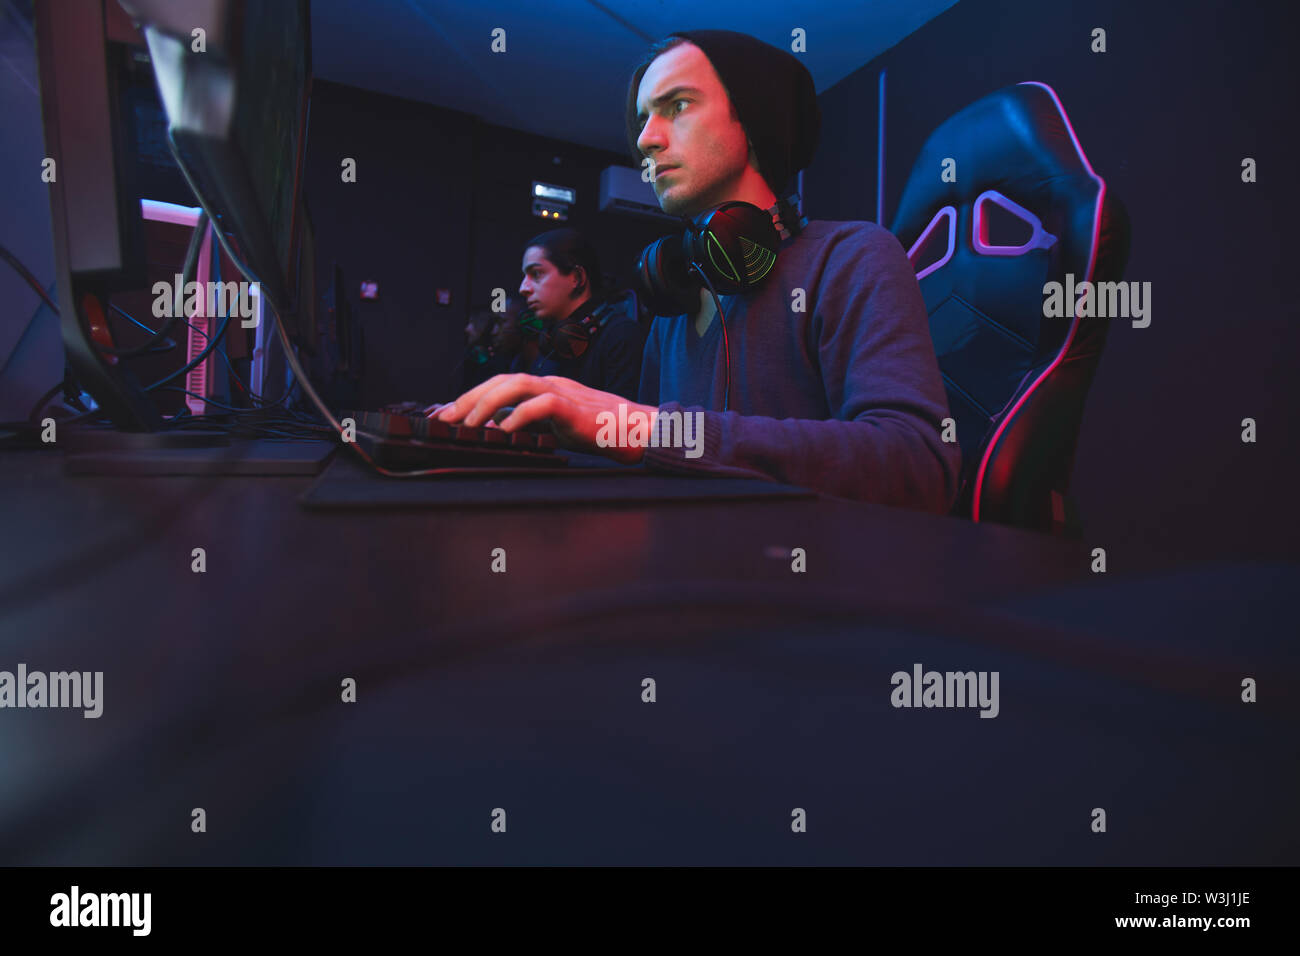 Serious concentrated young hipster man in black beanie sitting at table and pushing buttons of keyboard while participating in esports tournament Stock Photo